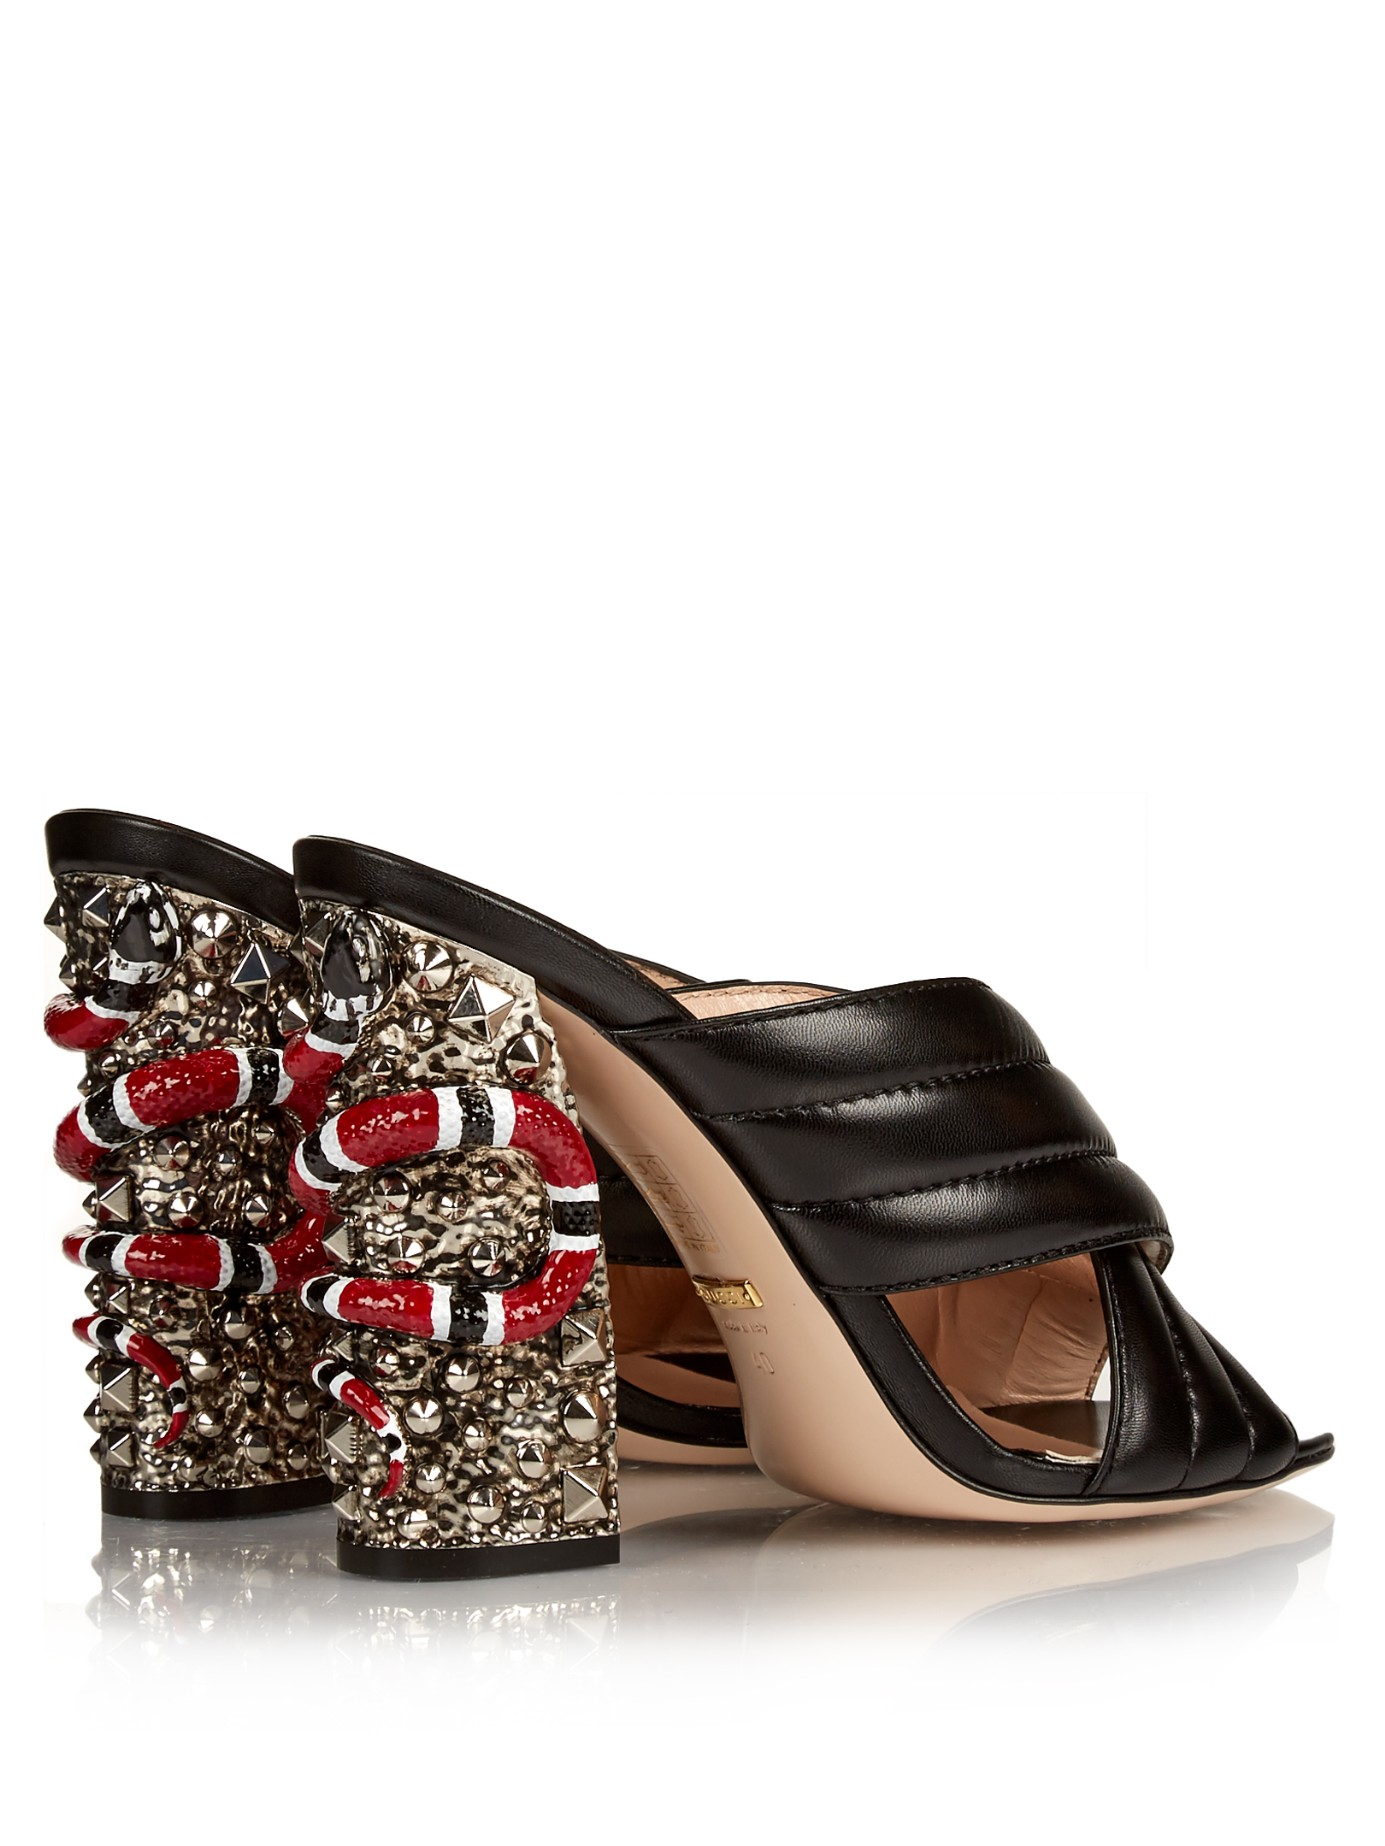 90adf9f80fb Lyst - Gucci Sylvia Crossover Embellished Mules in Black